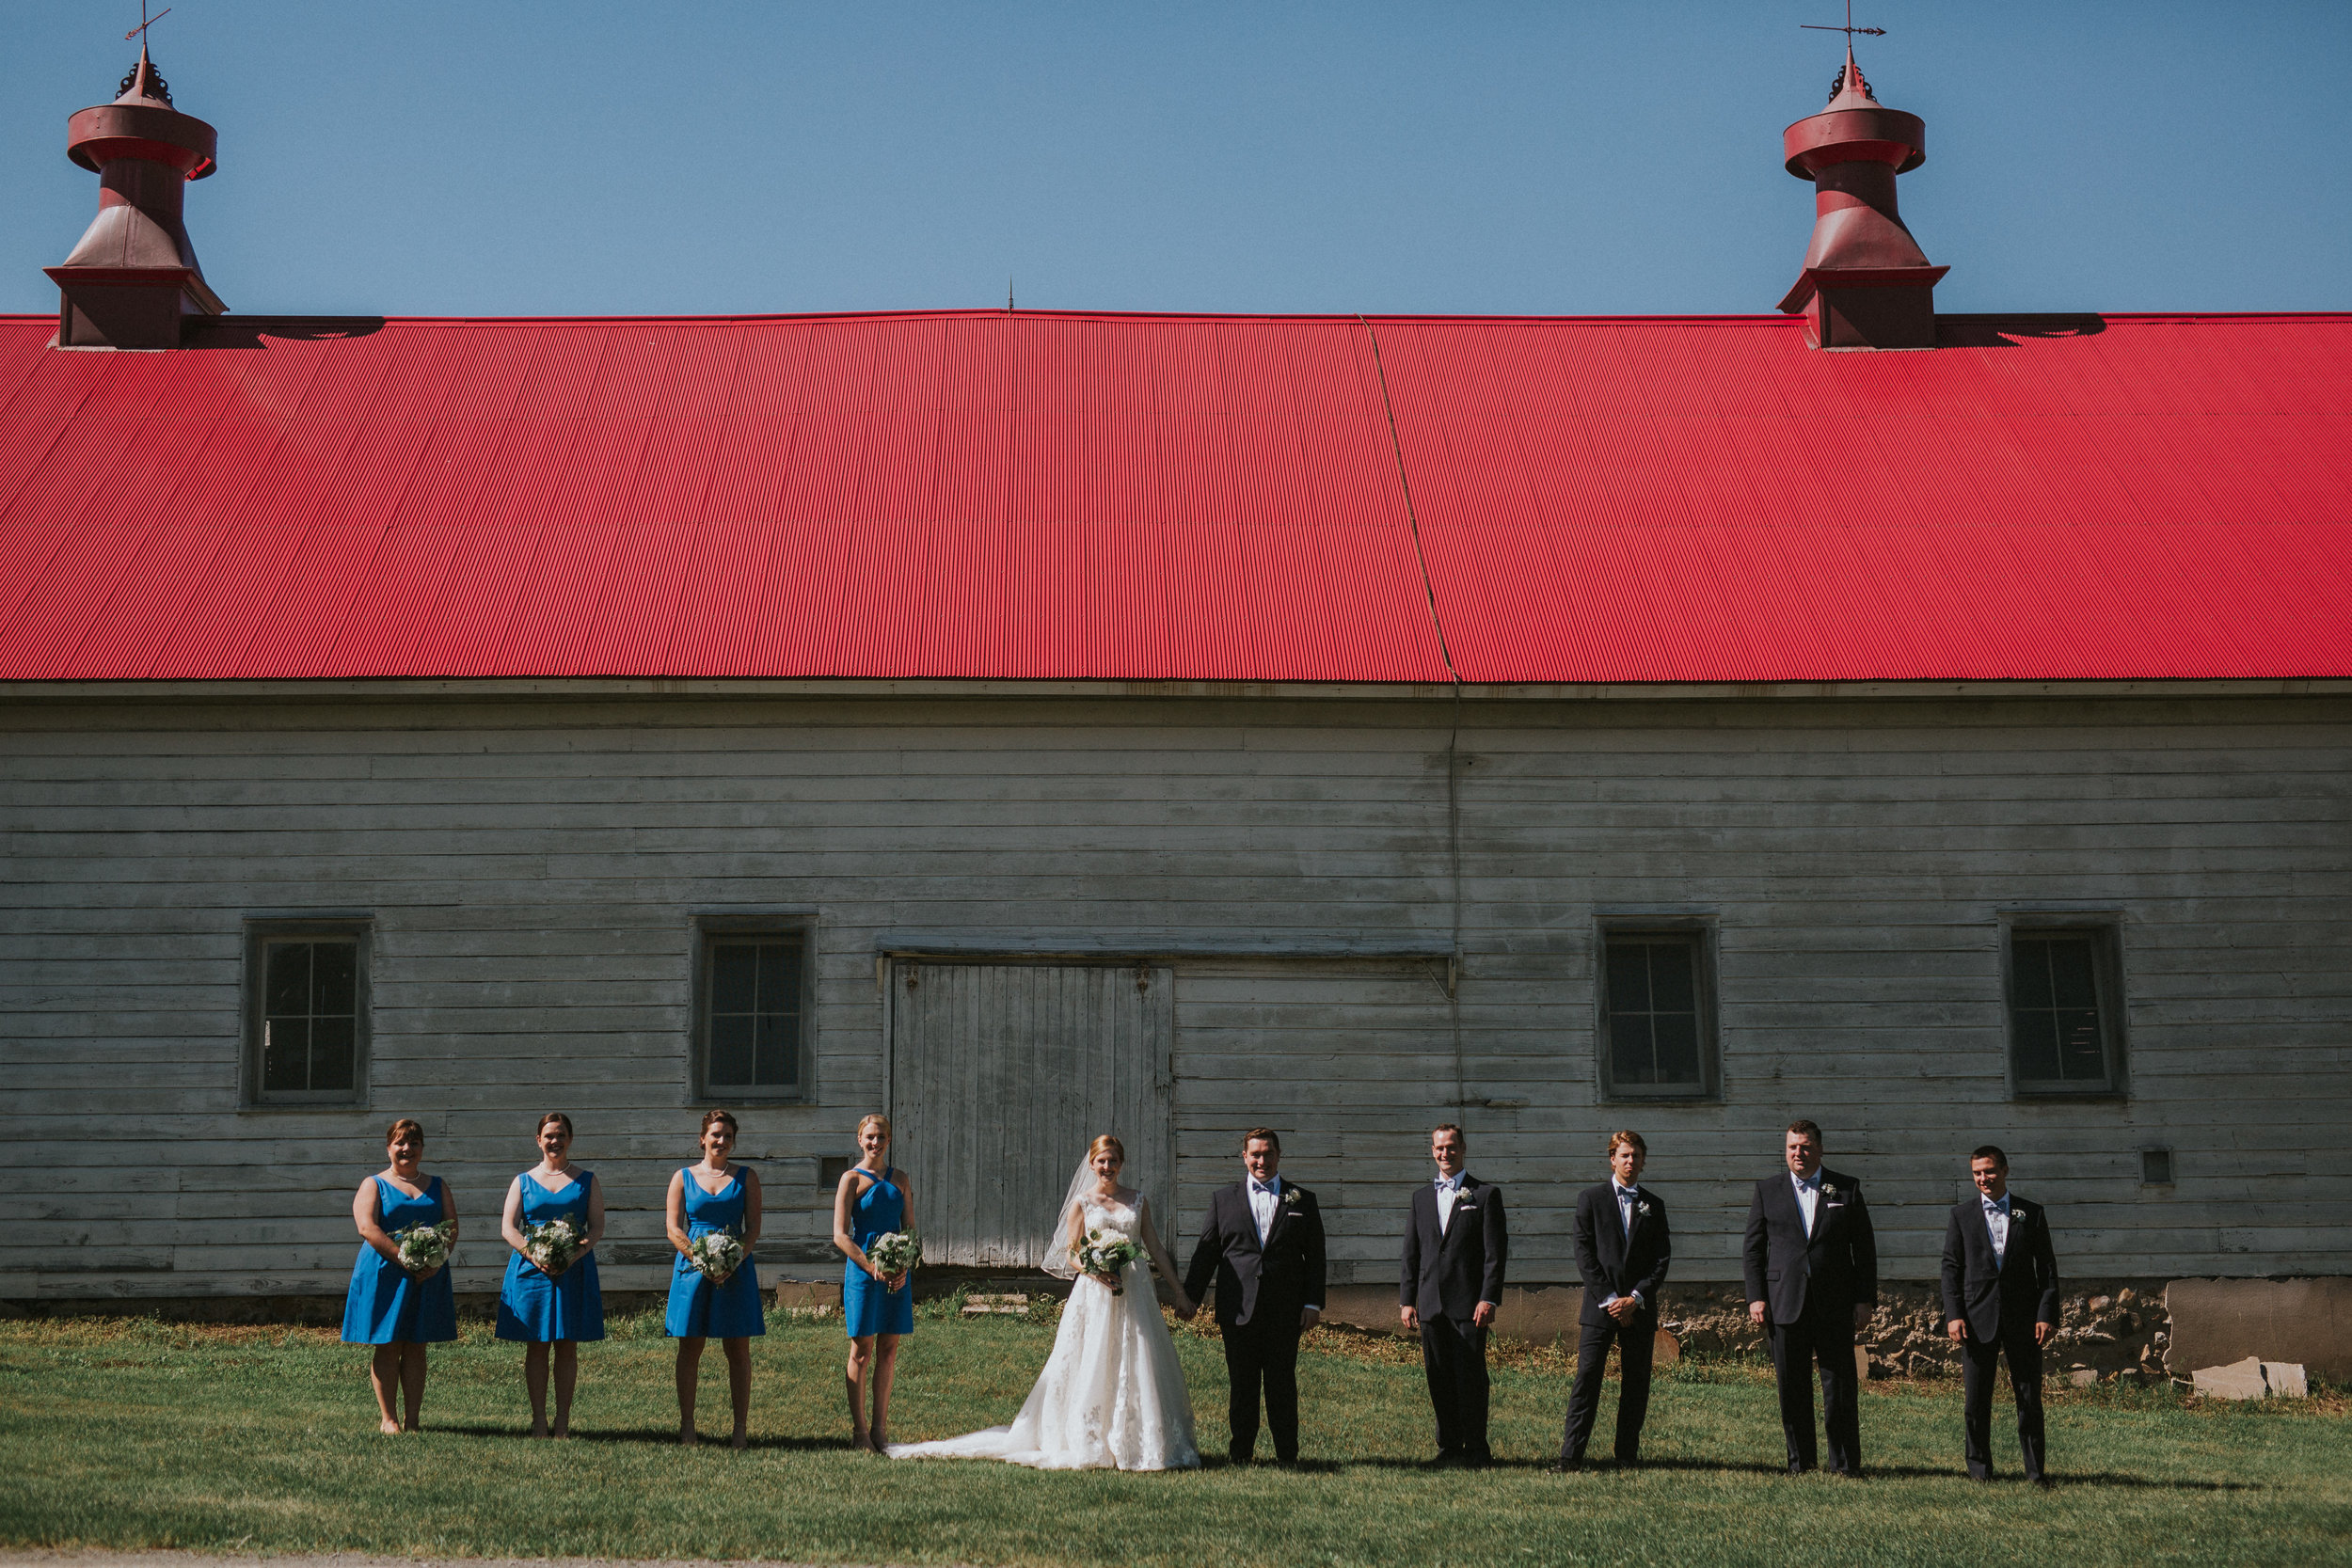 shaker_heritage_wedding_0040.JPG